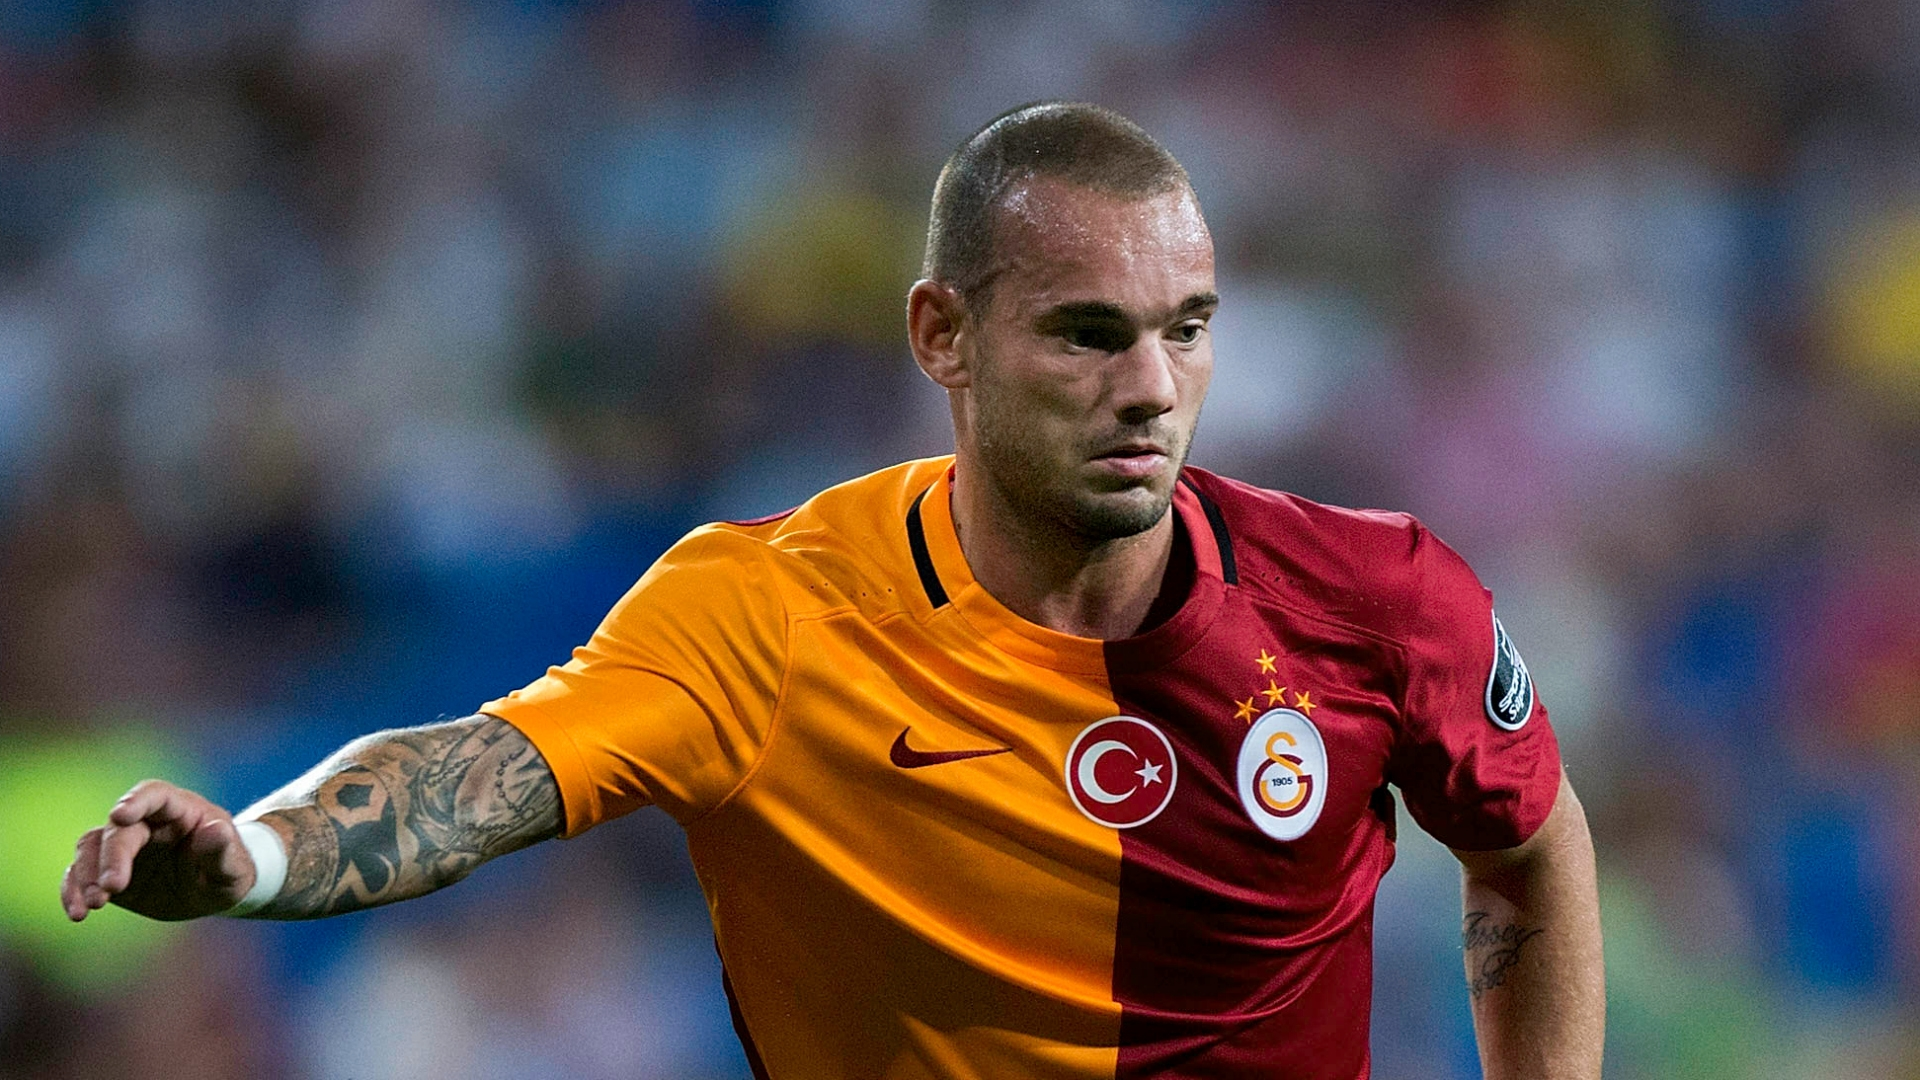 At the time that Sneijder first joined Galatasaray he was perhaps one of the most high-profile players to have joined the Turkish league.